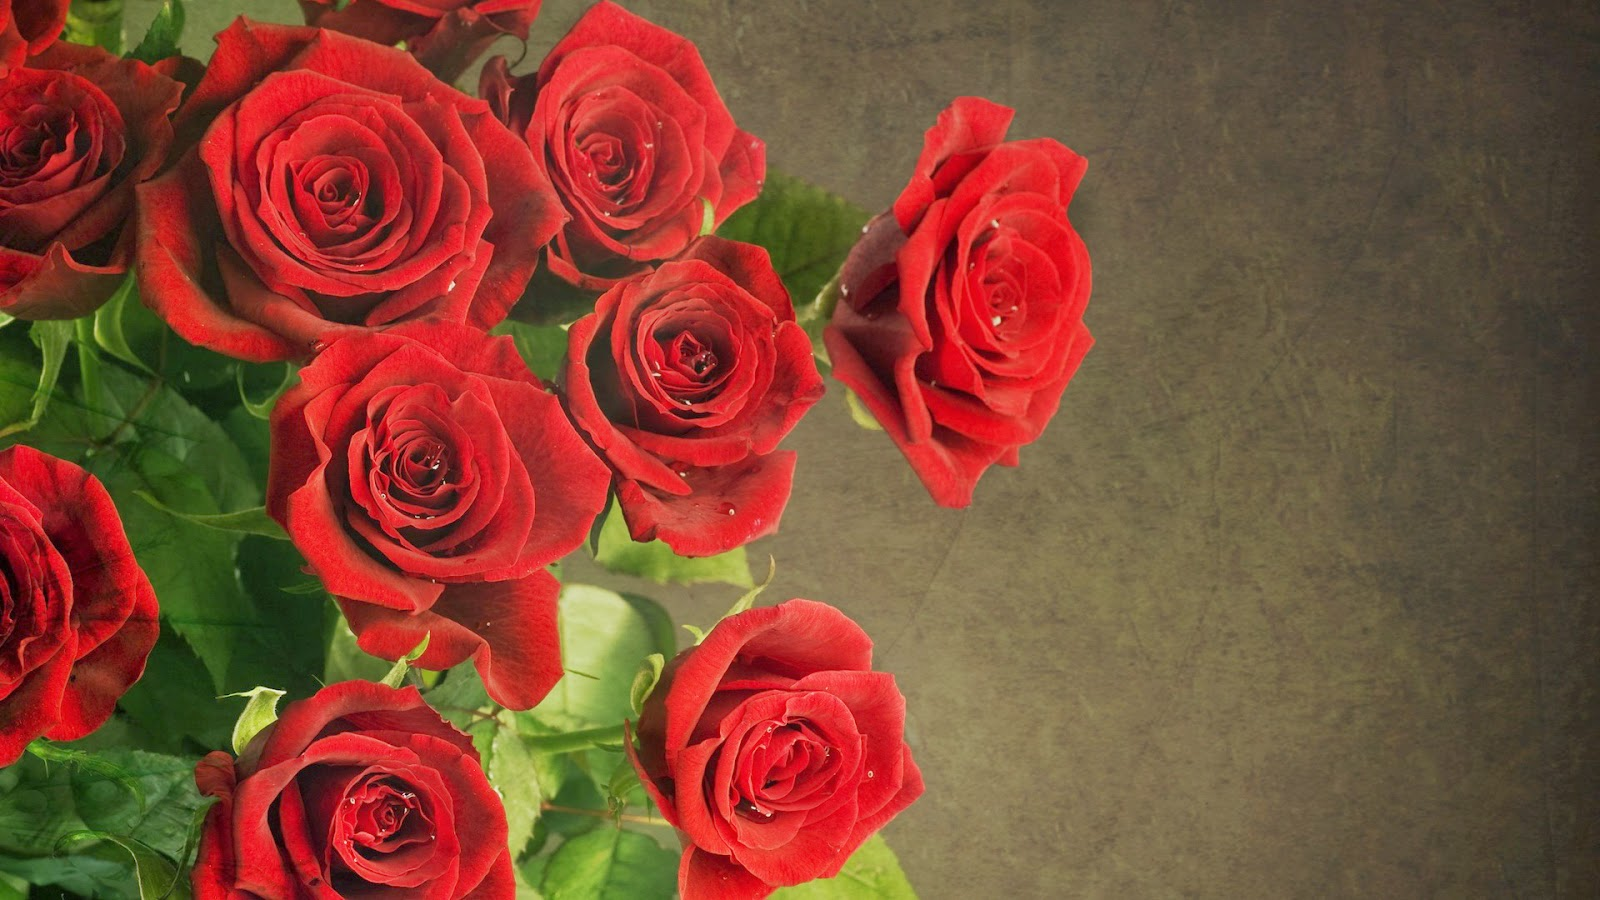 bunch of red roses wallpapers driverlayer search engine